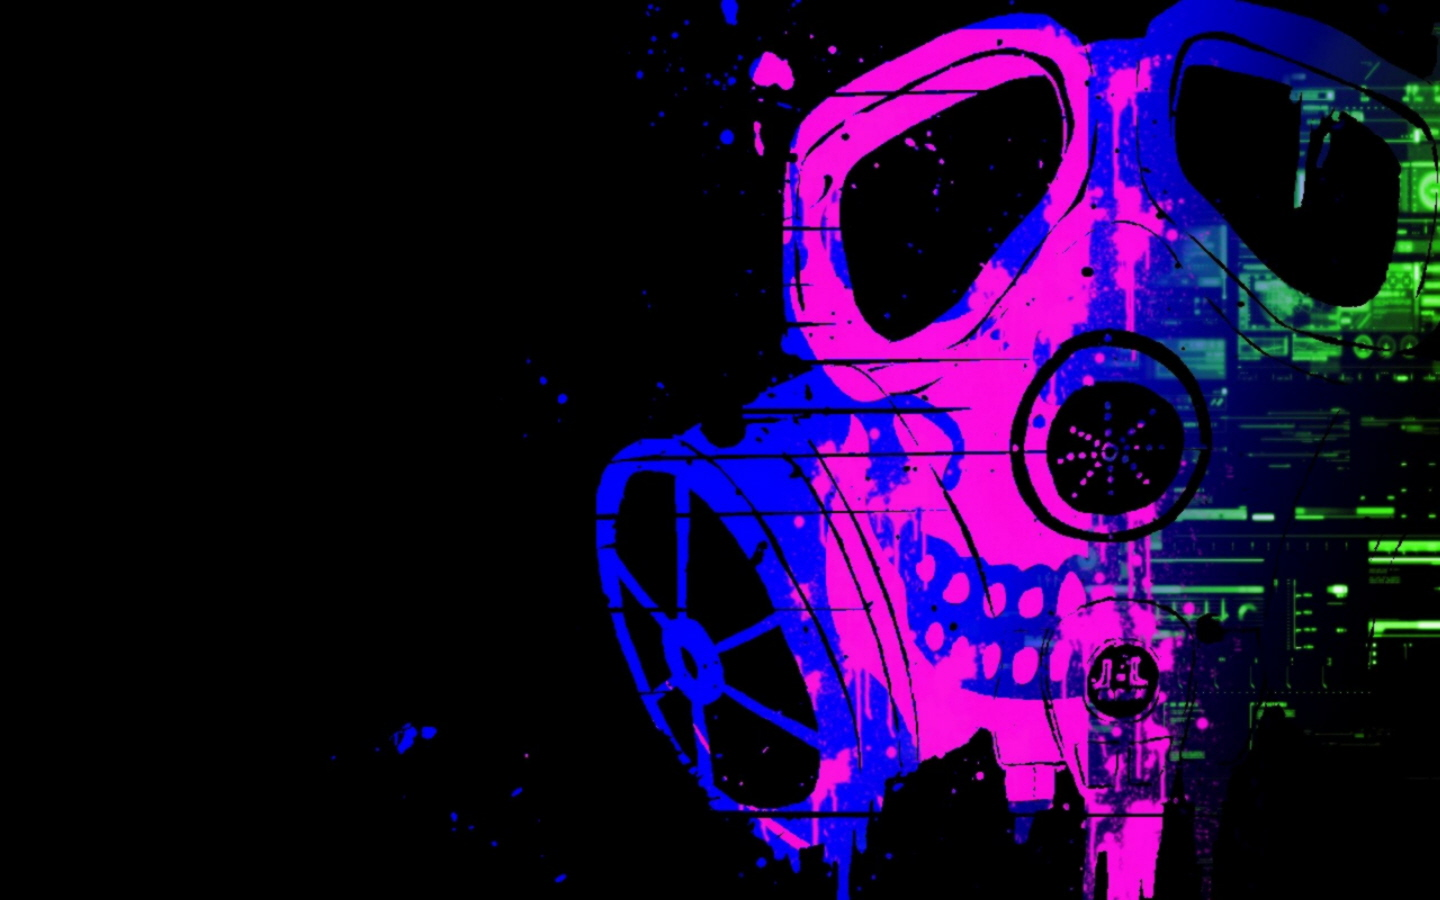 Wallpapers and other cool stuff 7th of december gasmask for Coool stuff com